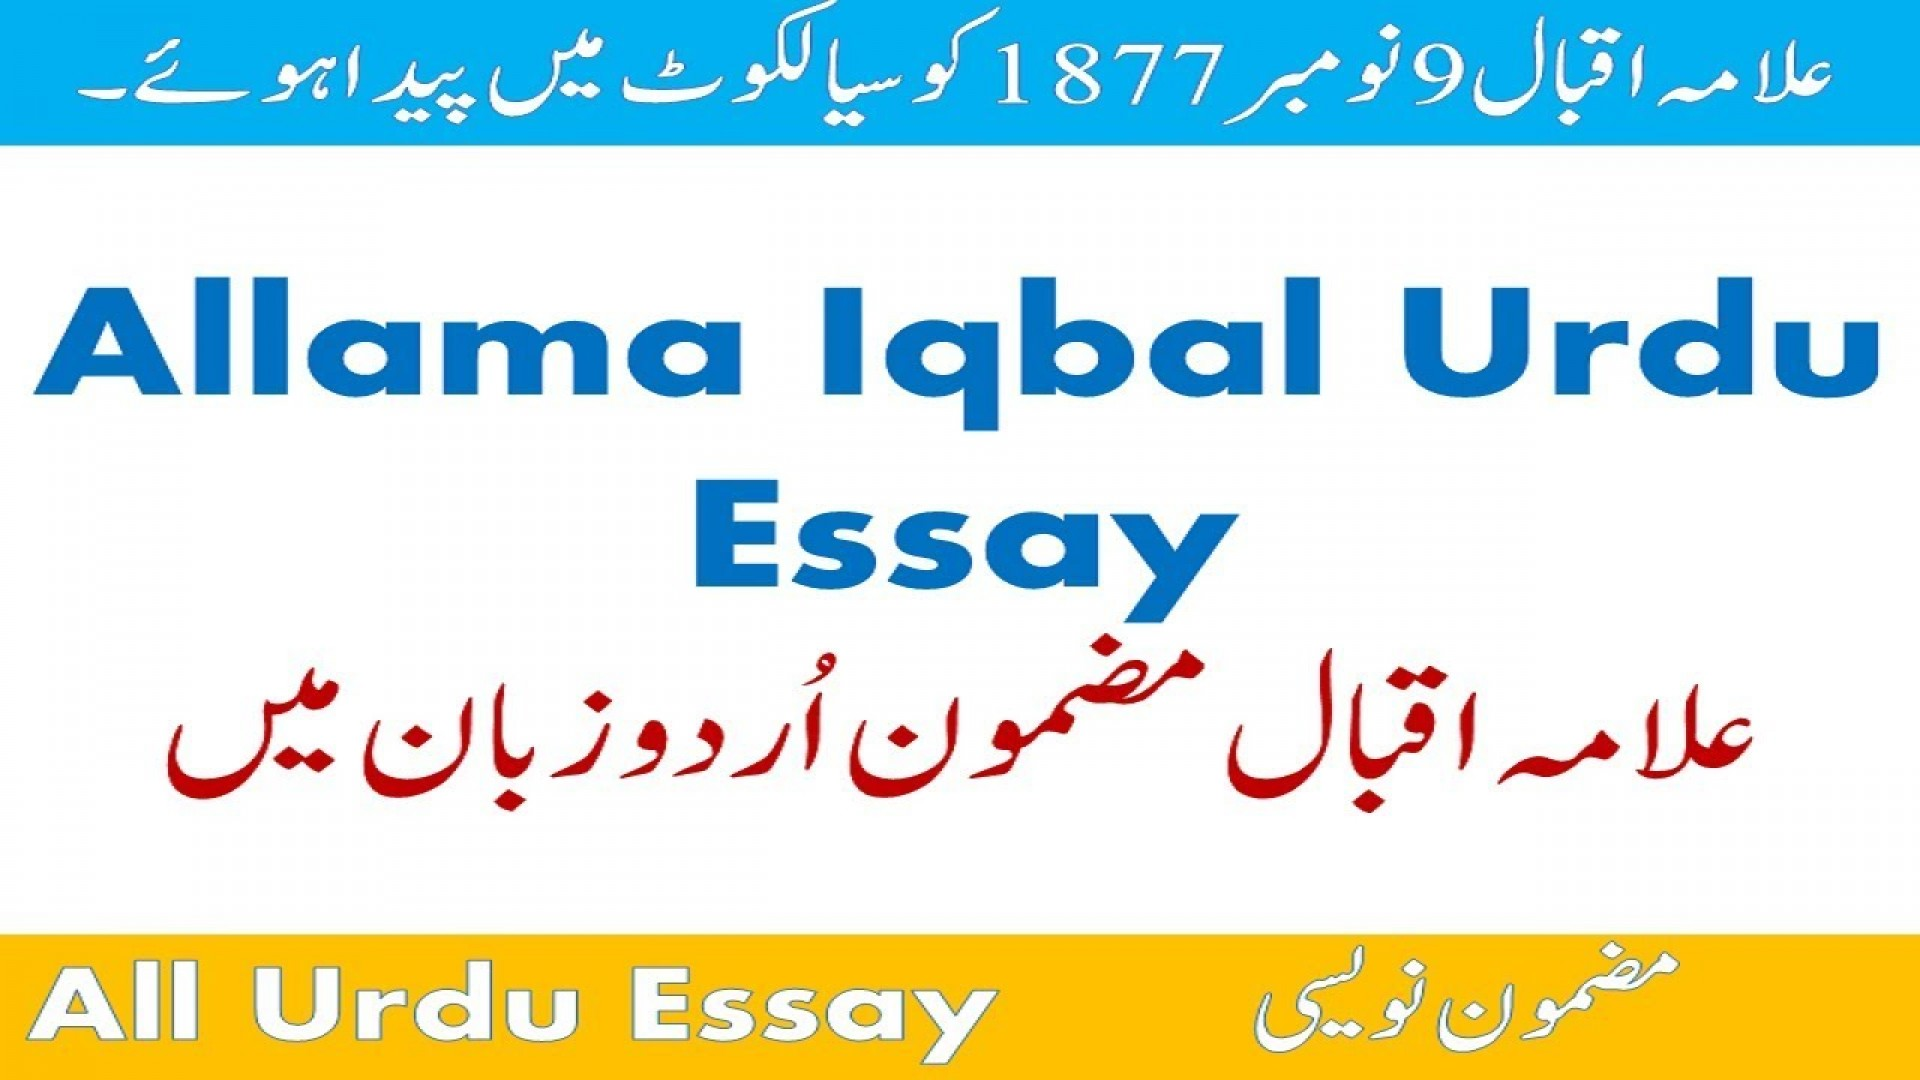 011 Maxresdefault Essay Example Urdu Allama Dreaded Iqbal On In For Class 10 With Poetry Ka Shaheen Headings And 1920